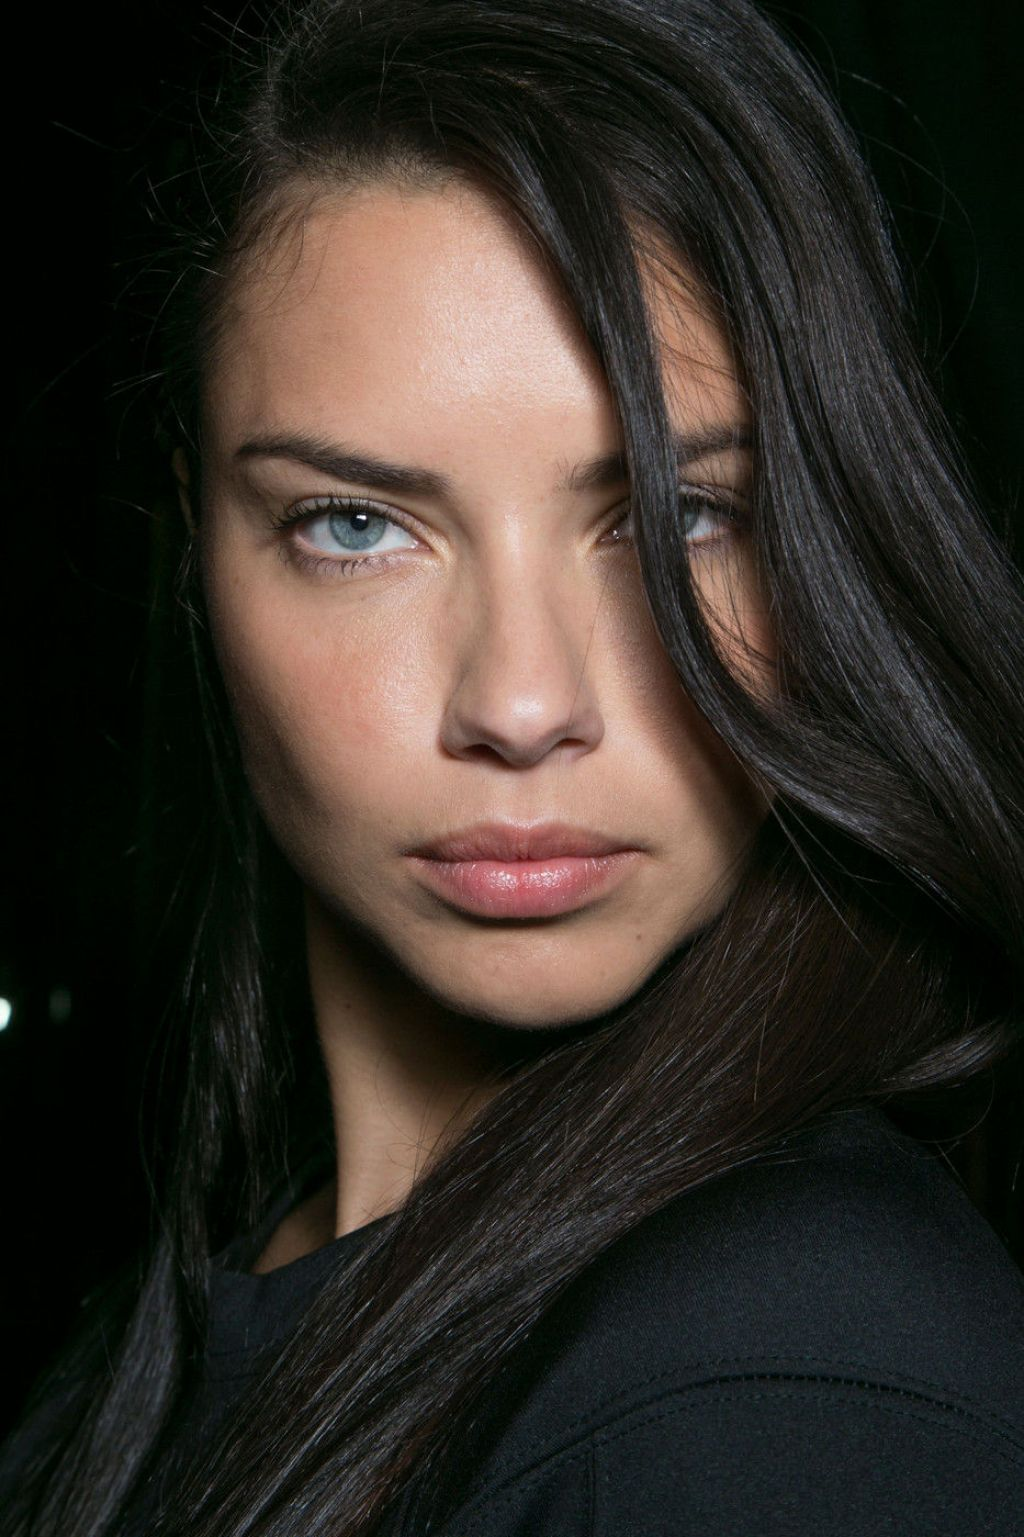 adriana lima photos - photo #23